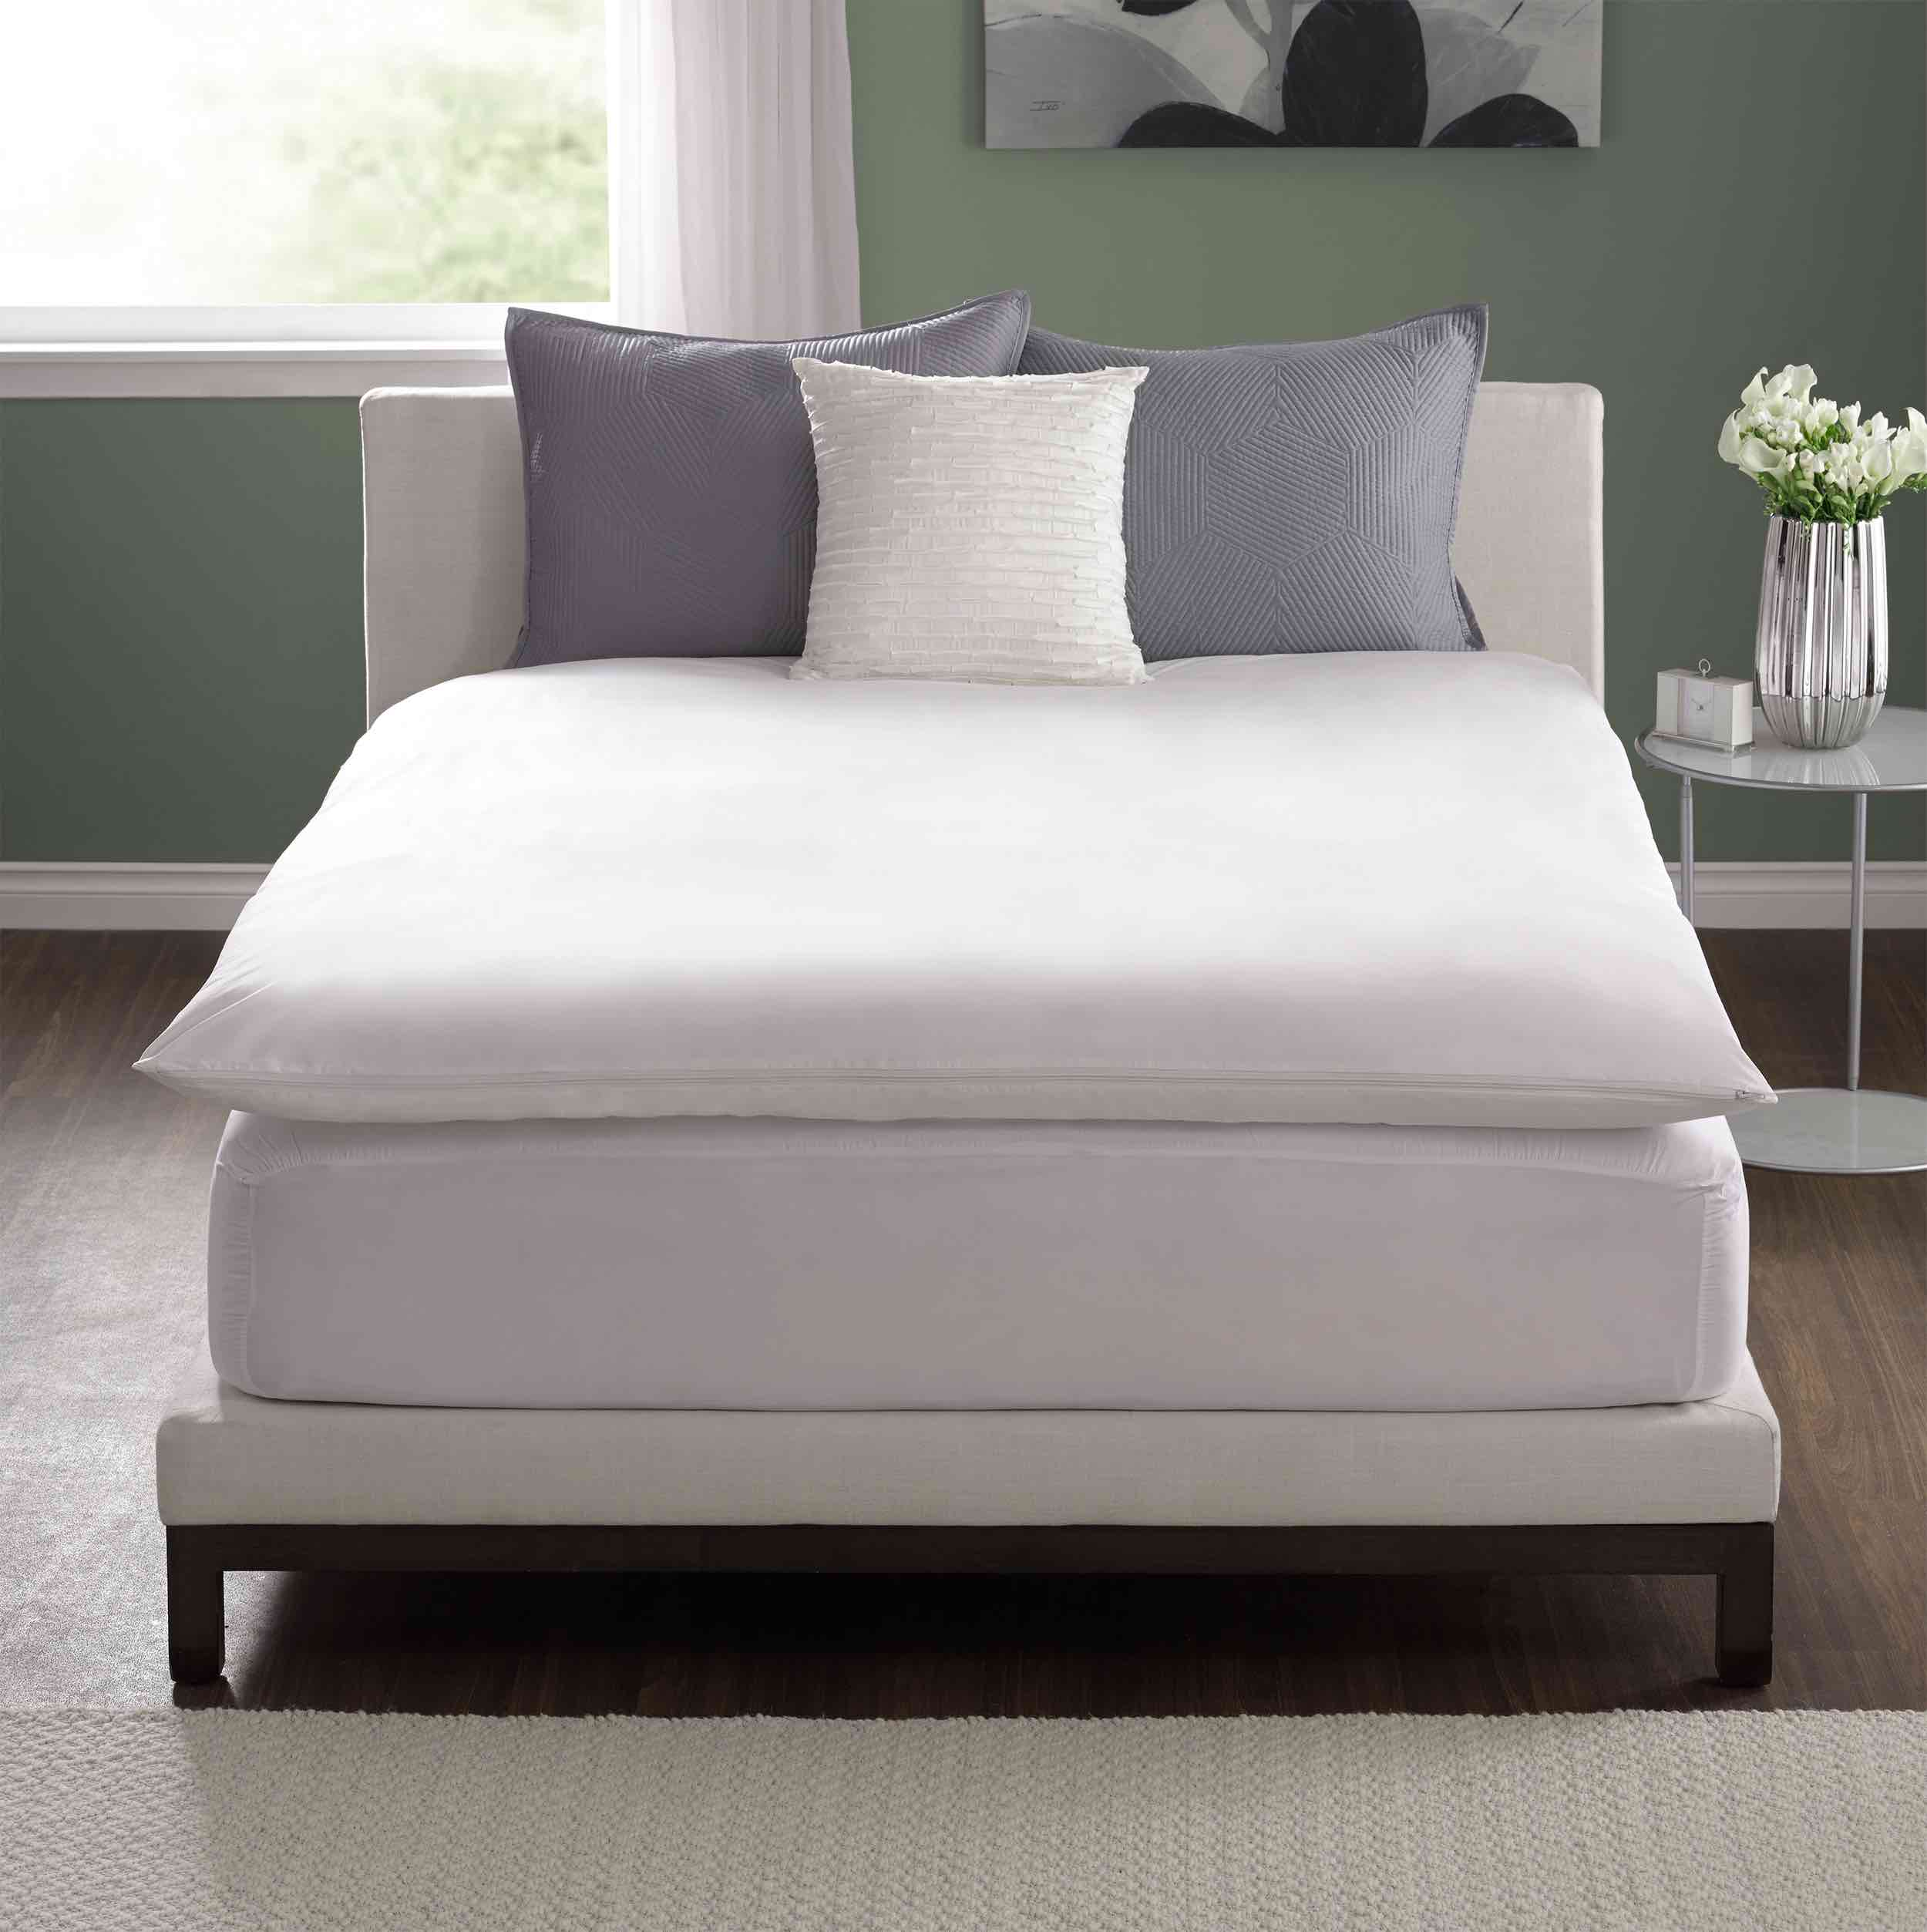 Pacific Coast Feather Mattress Topper Review by www.snoremagazine.com